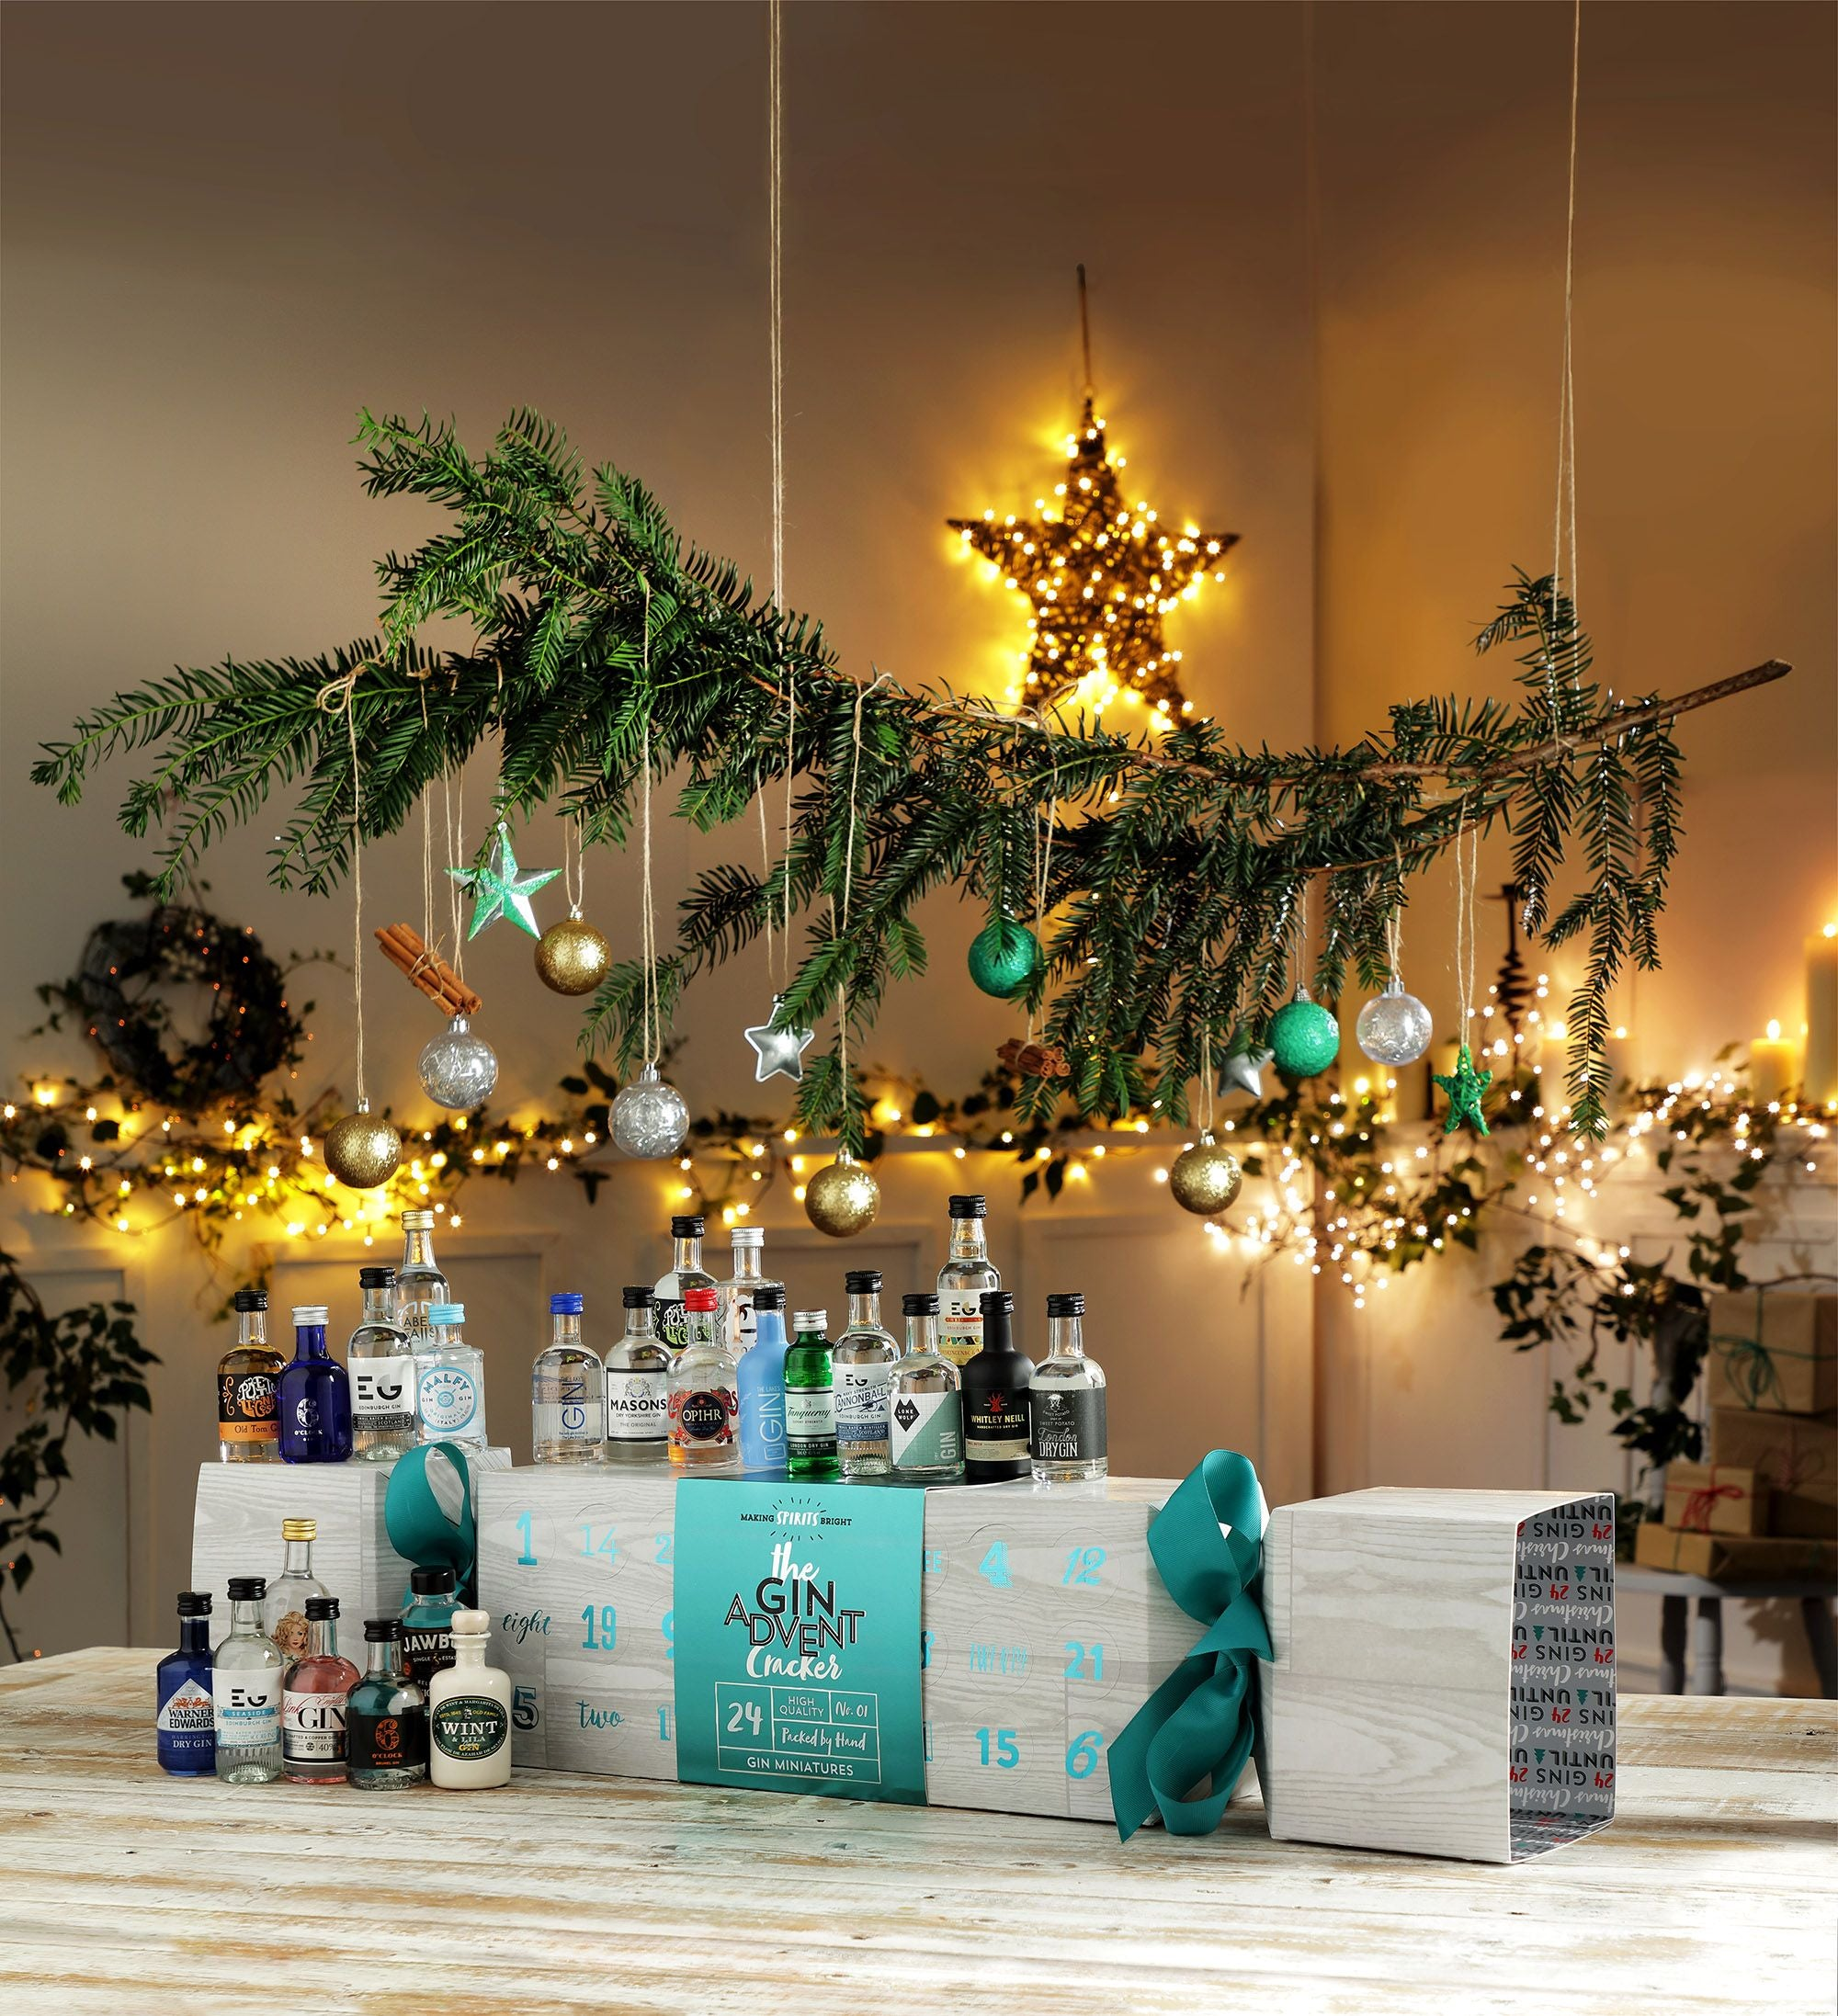 Gin Advent Cracker Calendar by GDS - The Pop Up Deli